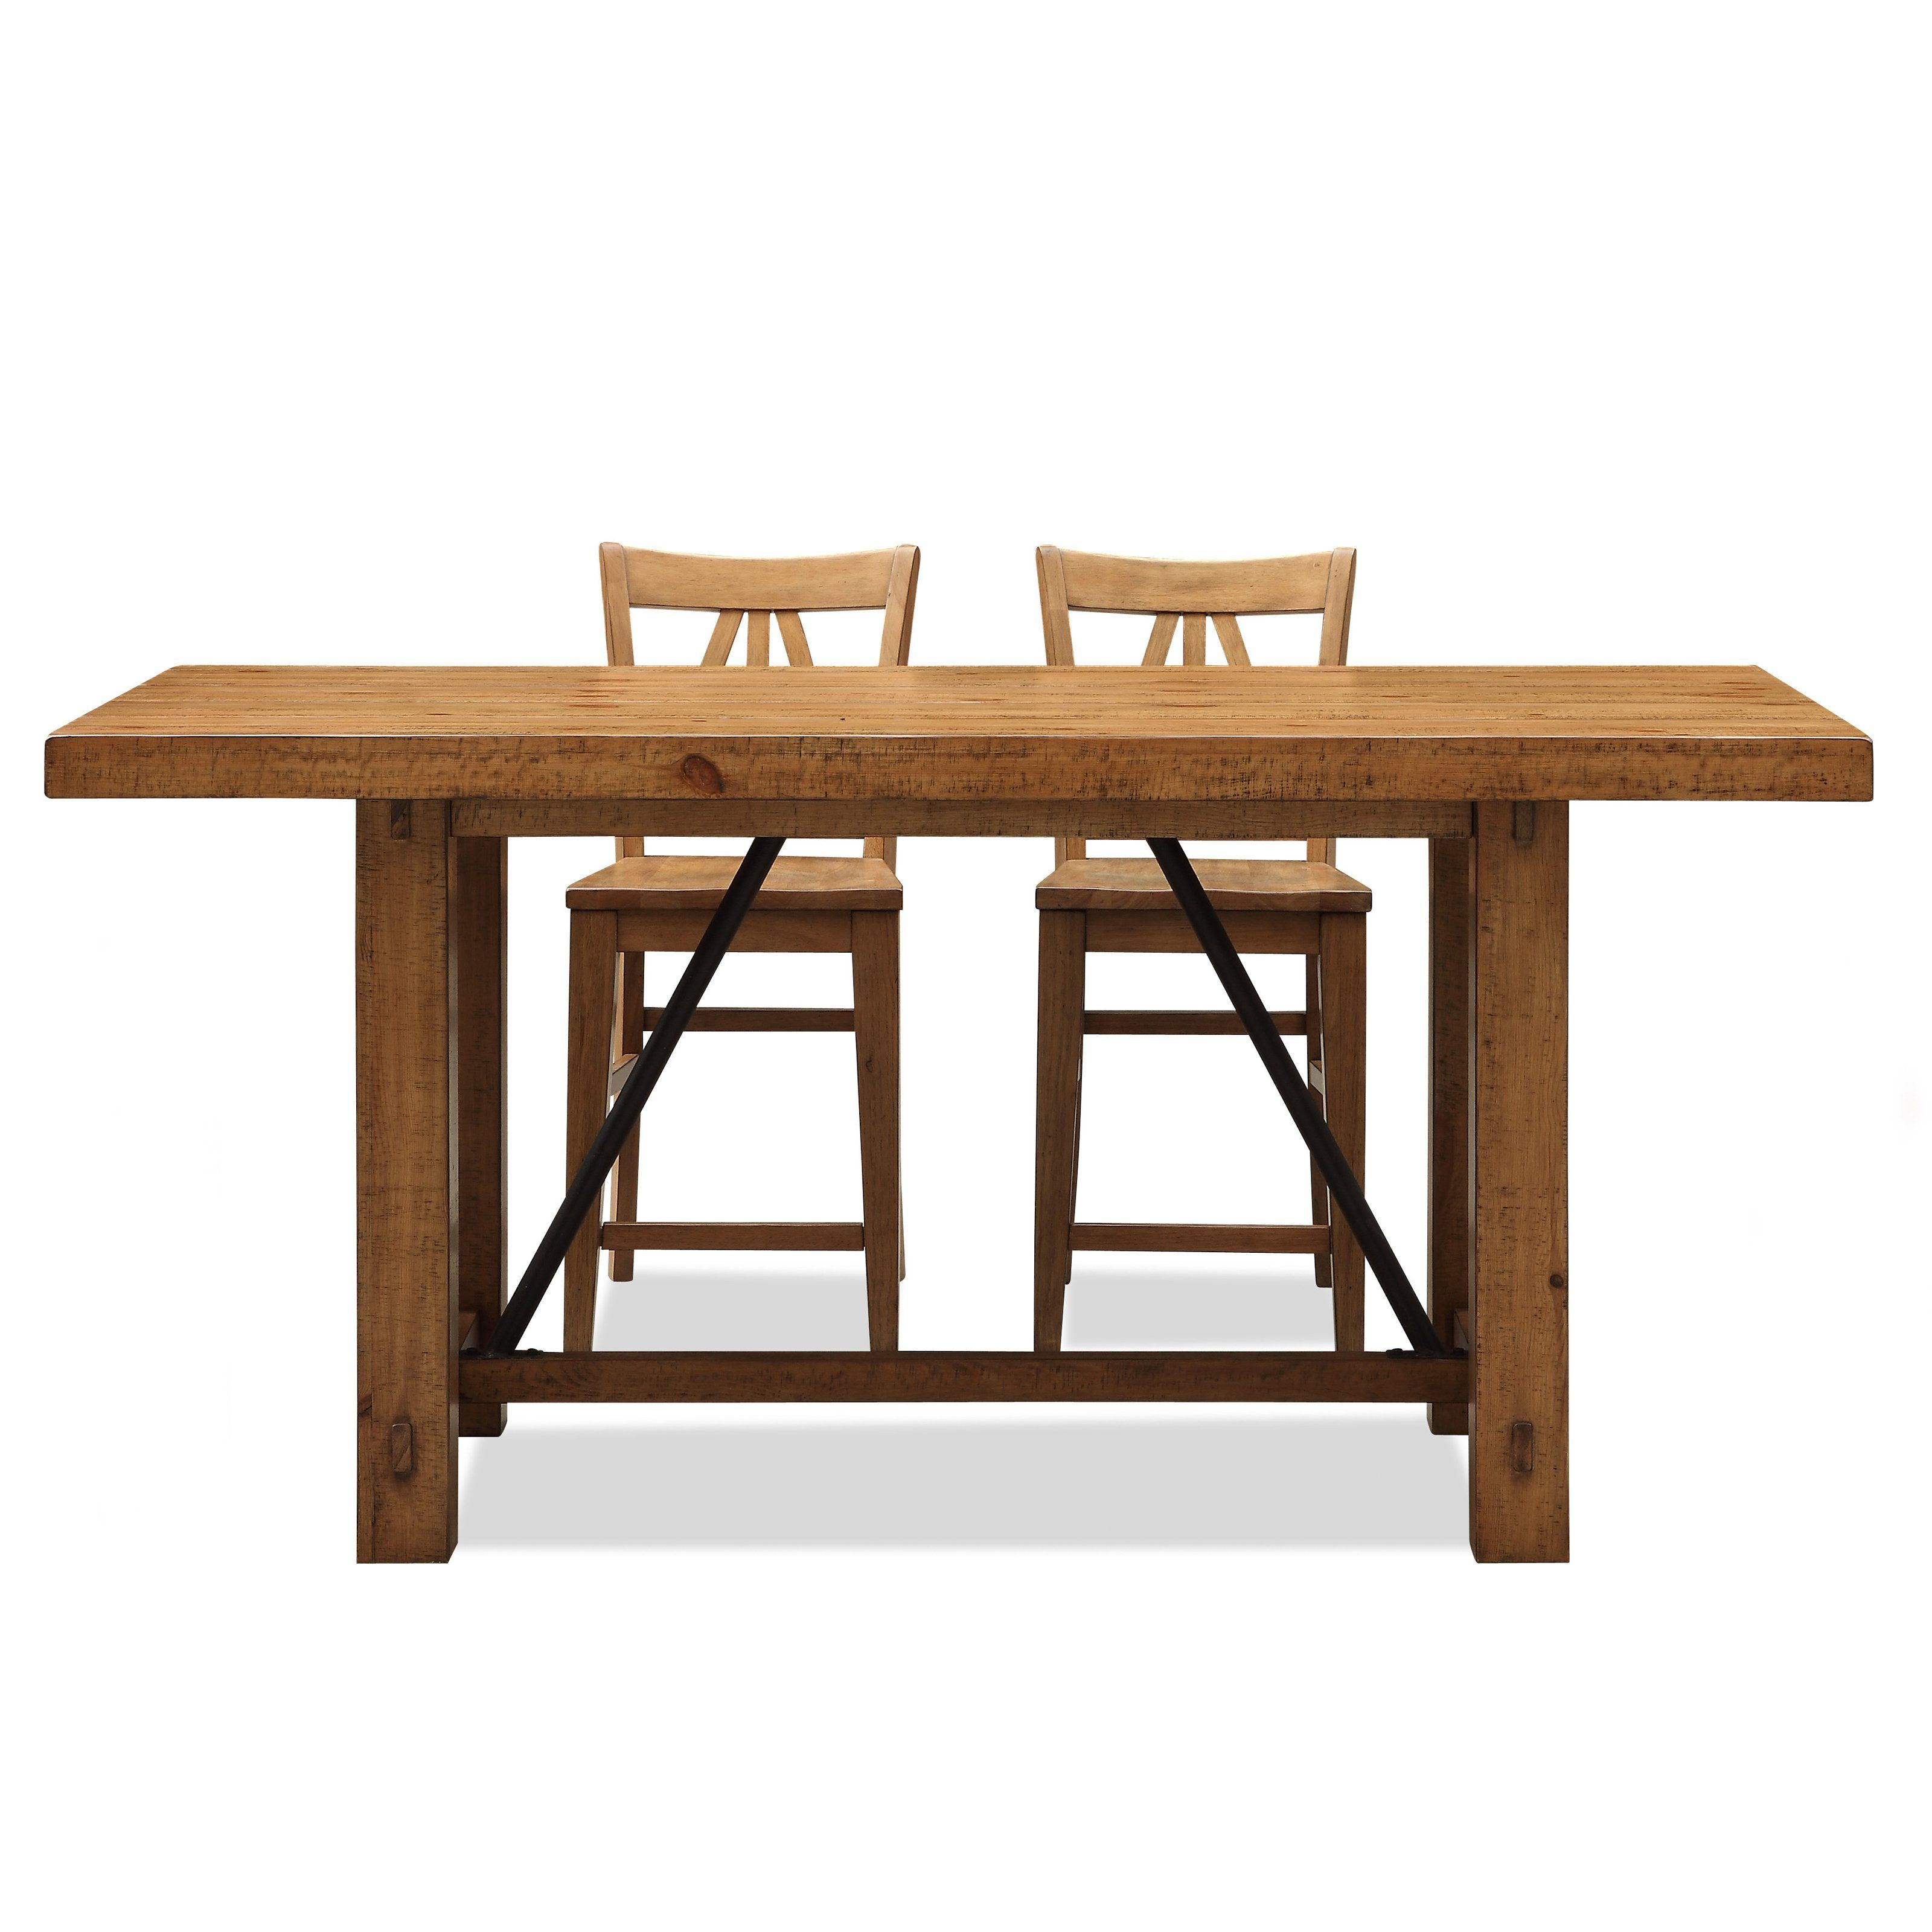 Summerhill Trestle Counter Height Dining Table | from hayneedle.com ...